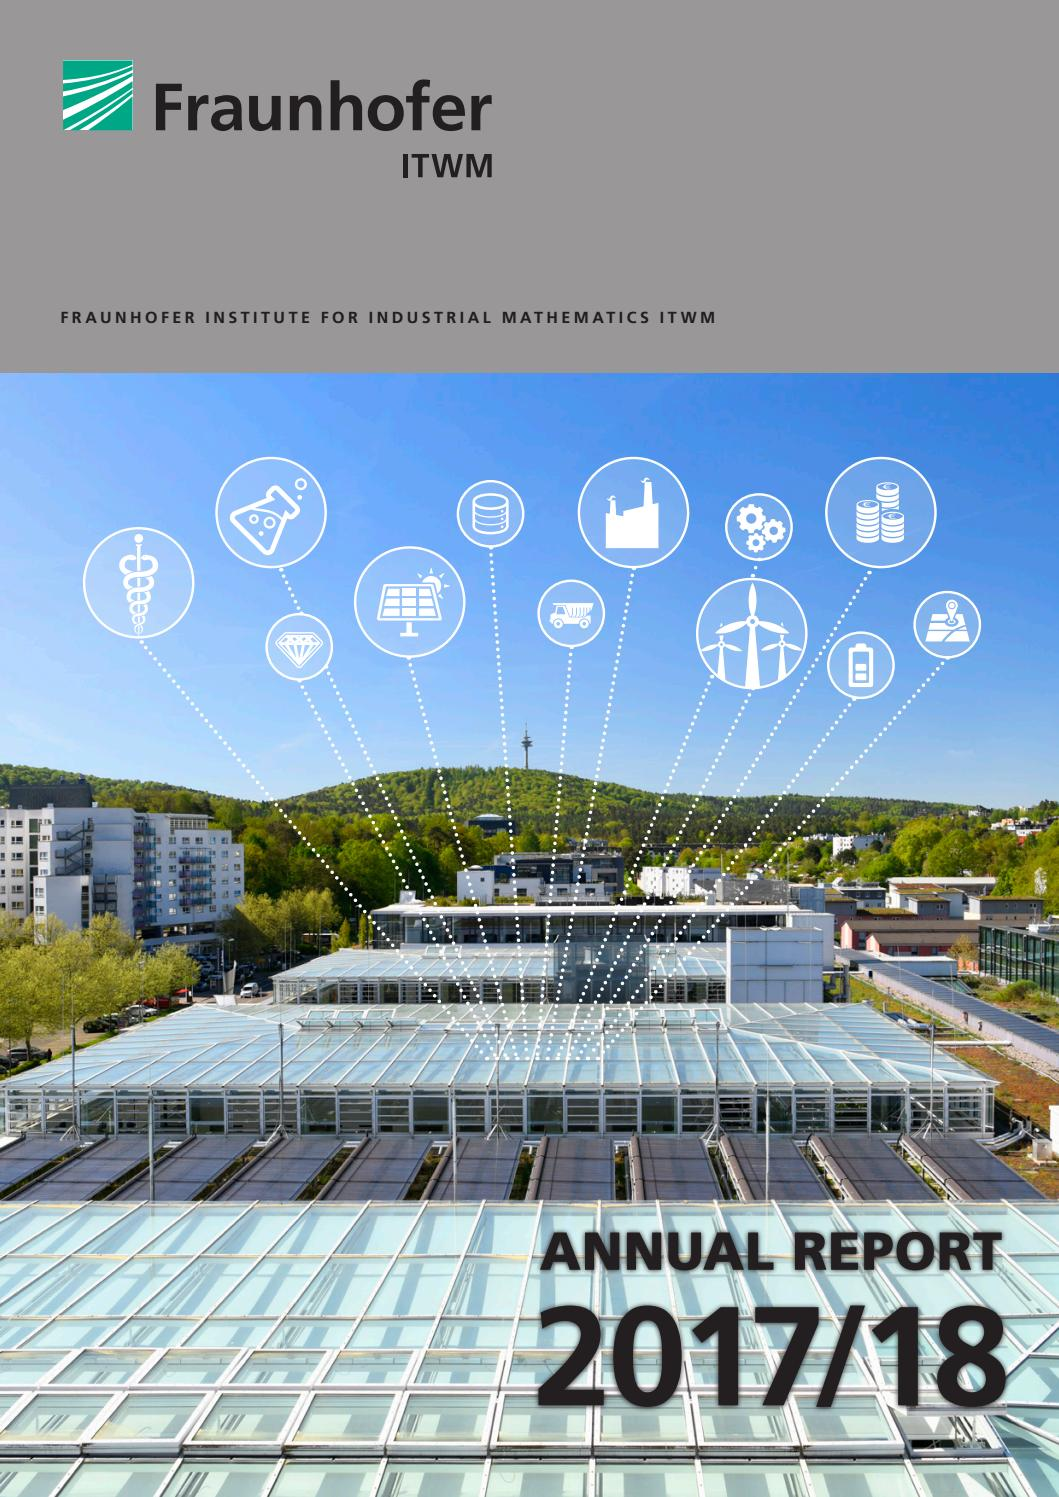 Gfk Pool Duisburg Annual Report 2017 18 Fraunhofer Institute For Industrial